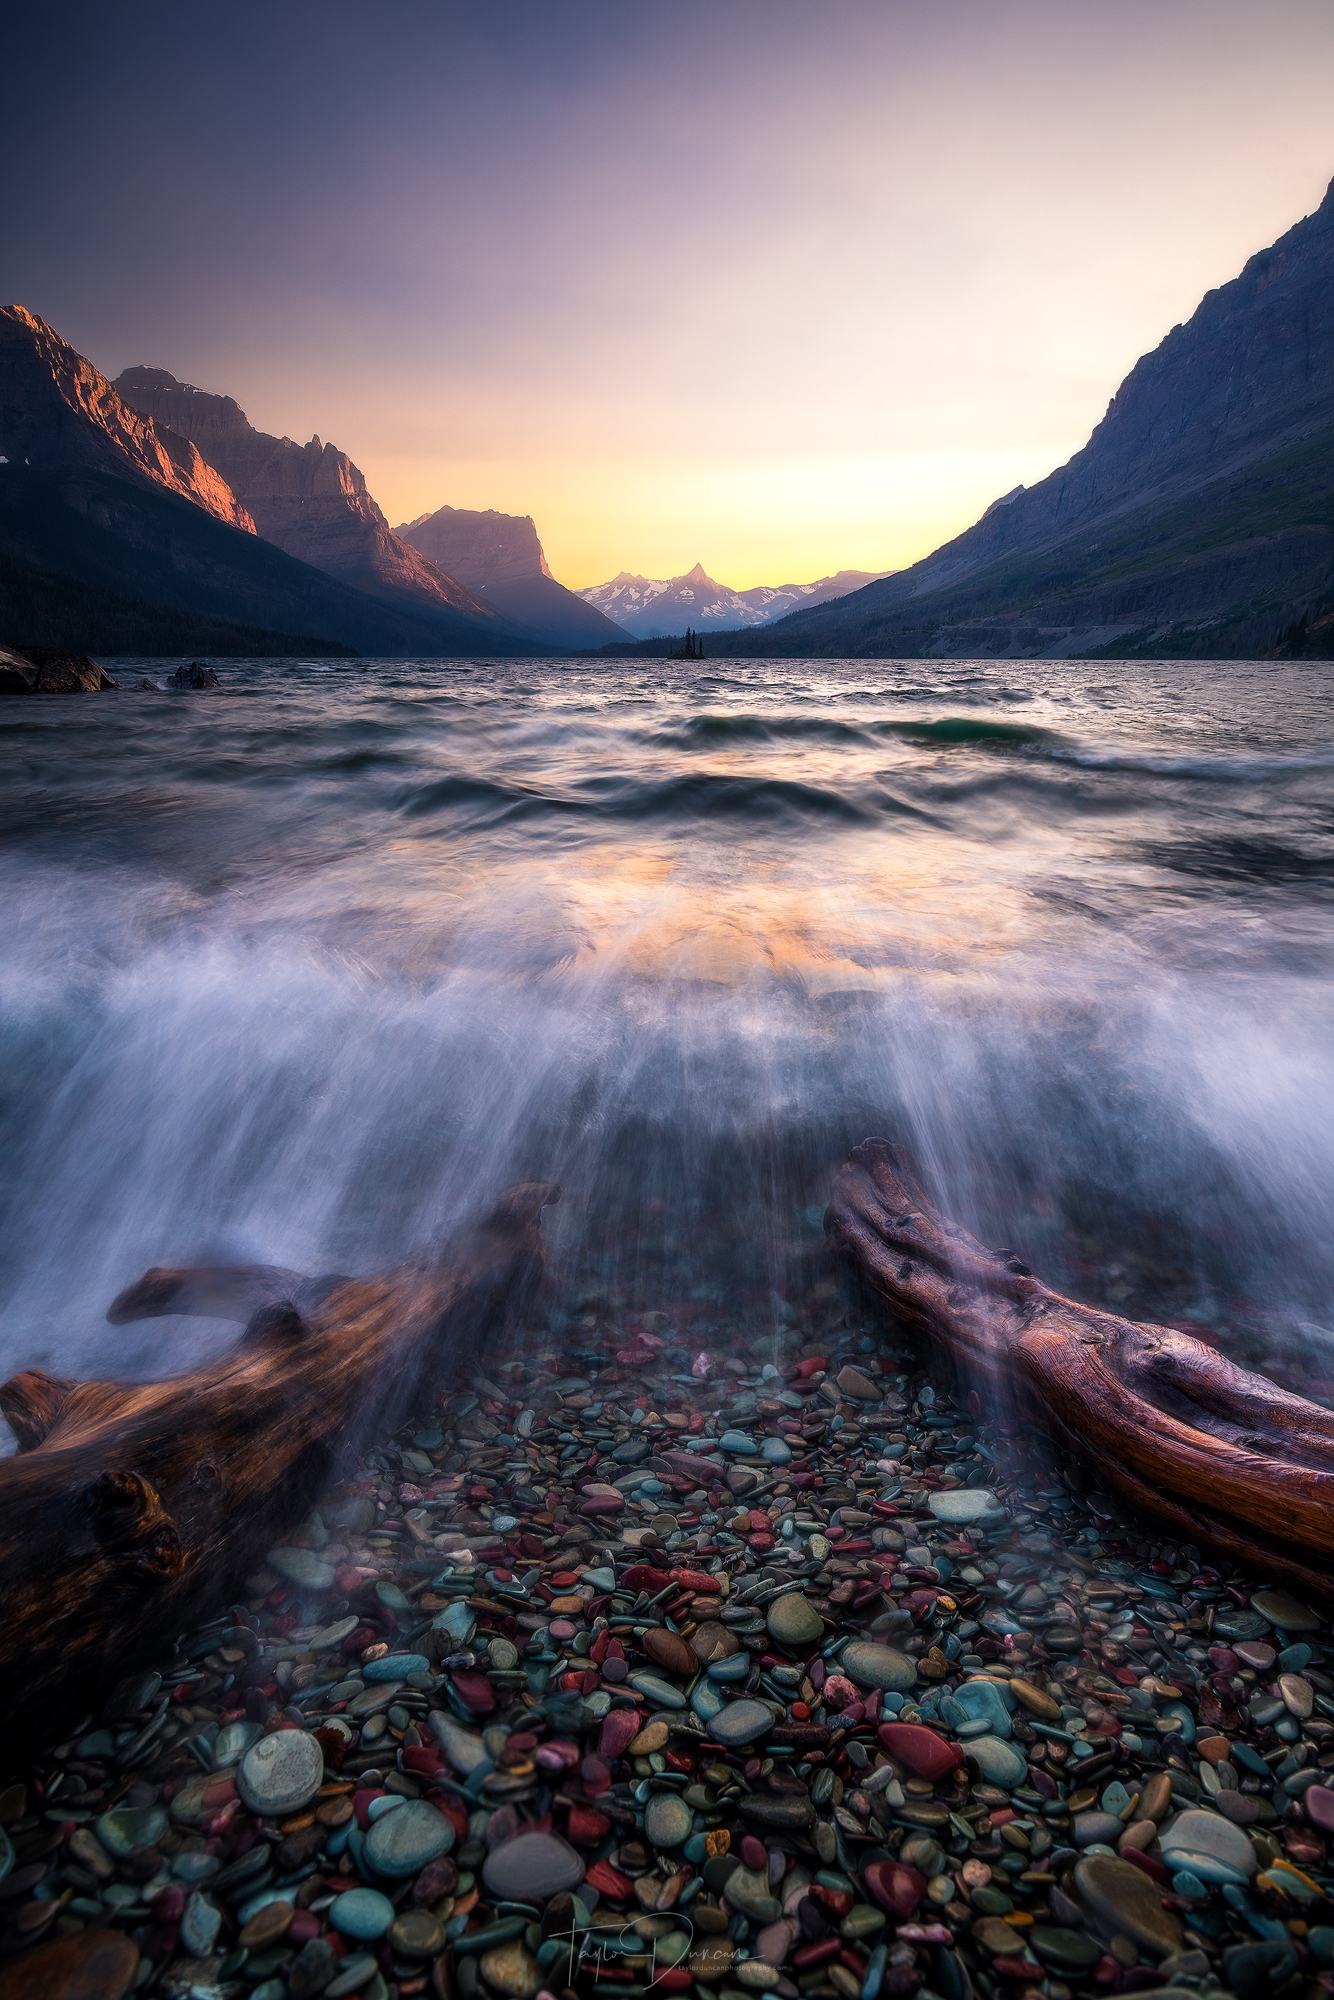 St. Mary Lake churns out waves along the lakeshore under a fiery sunset